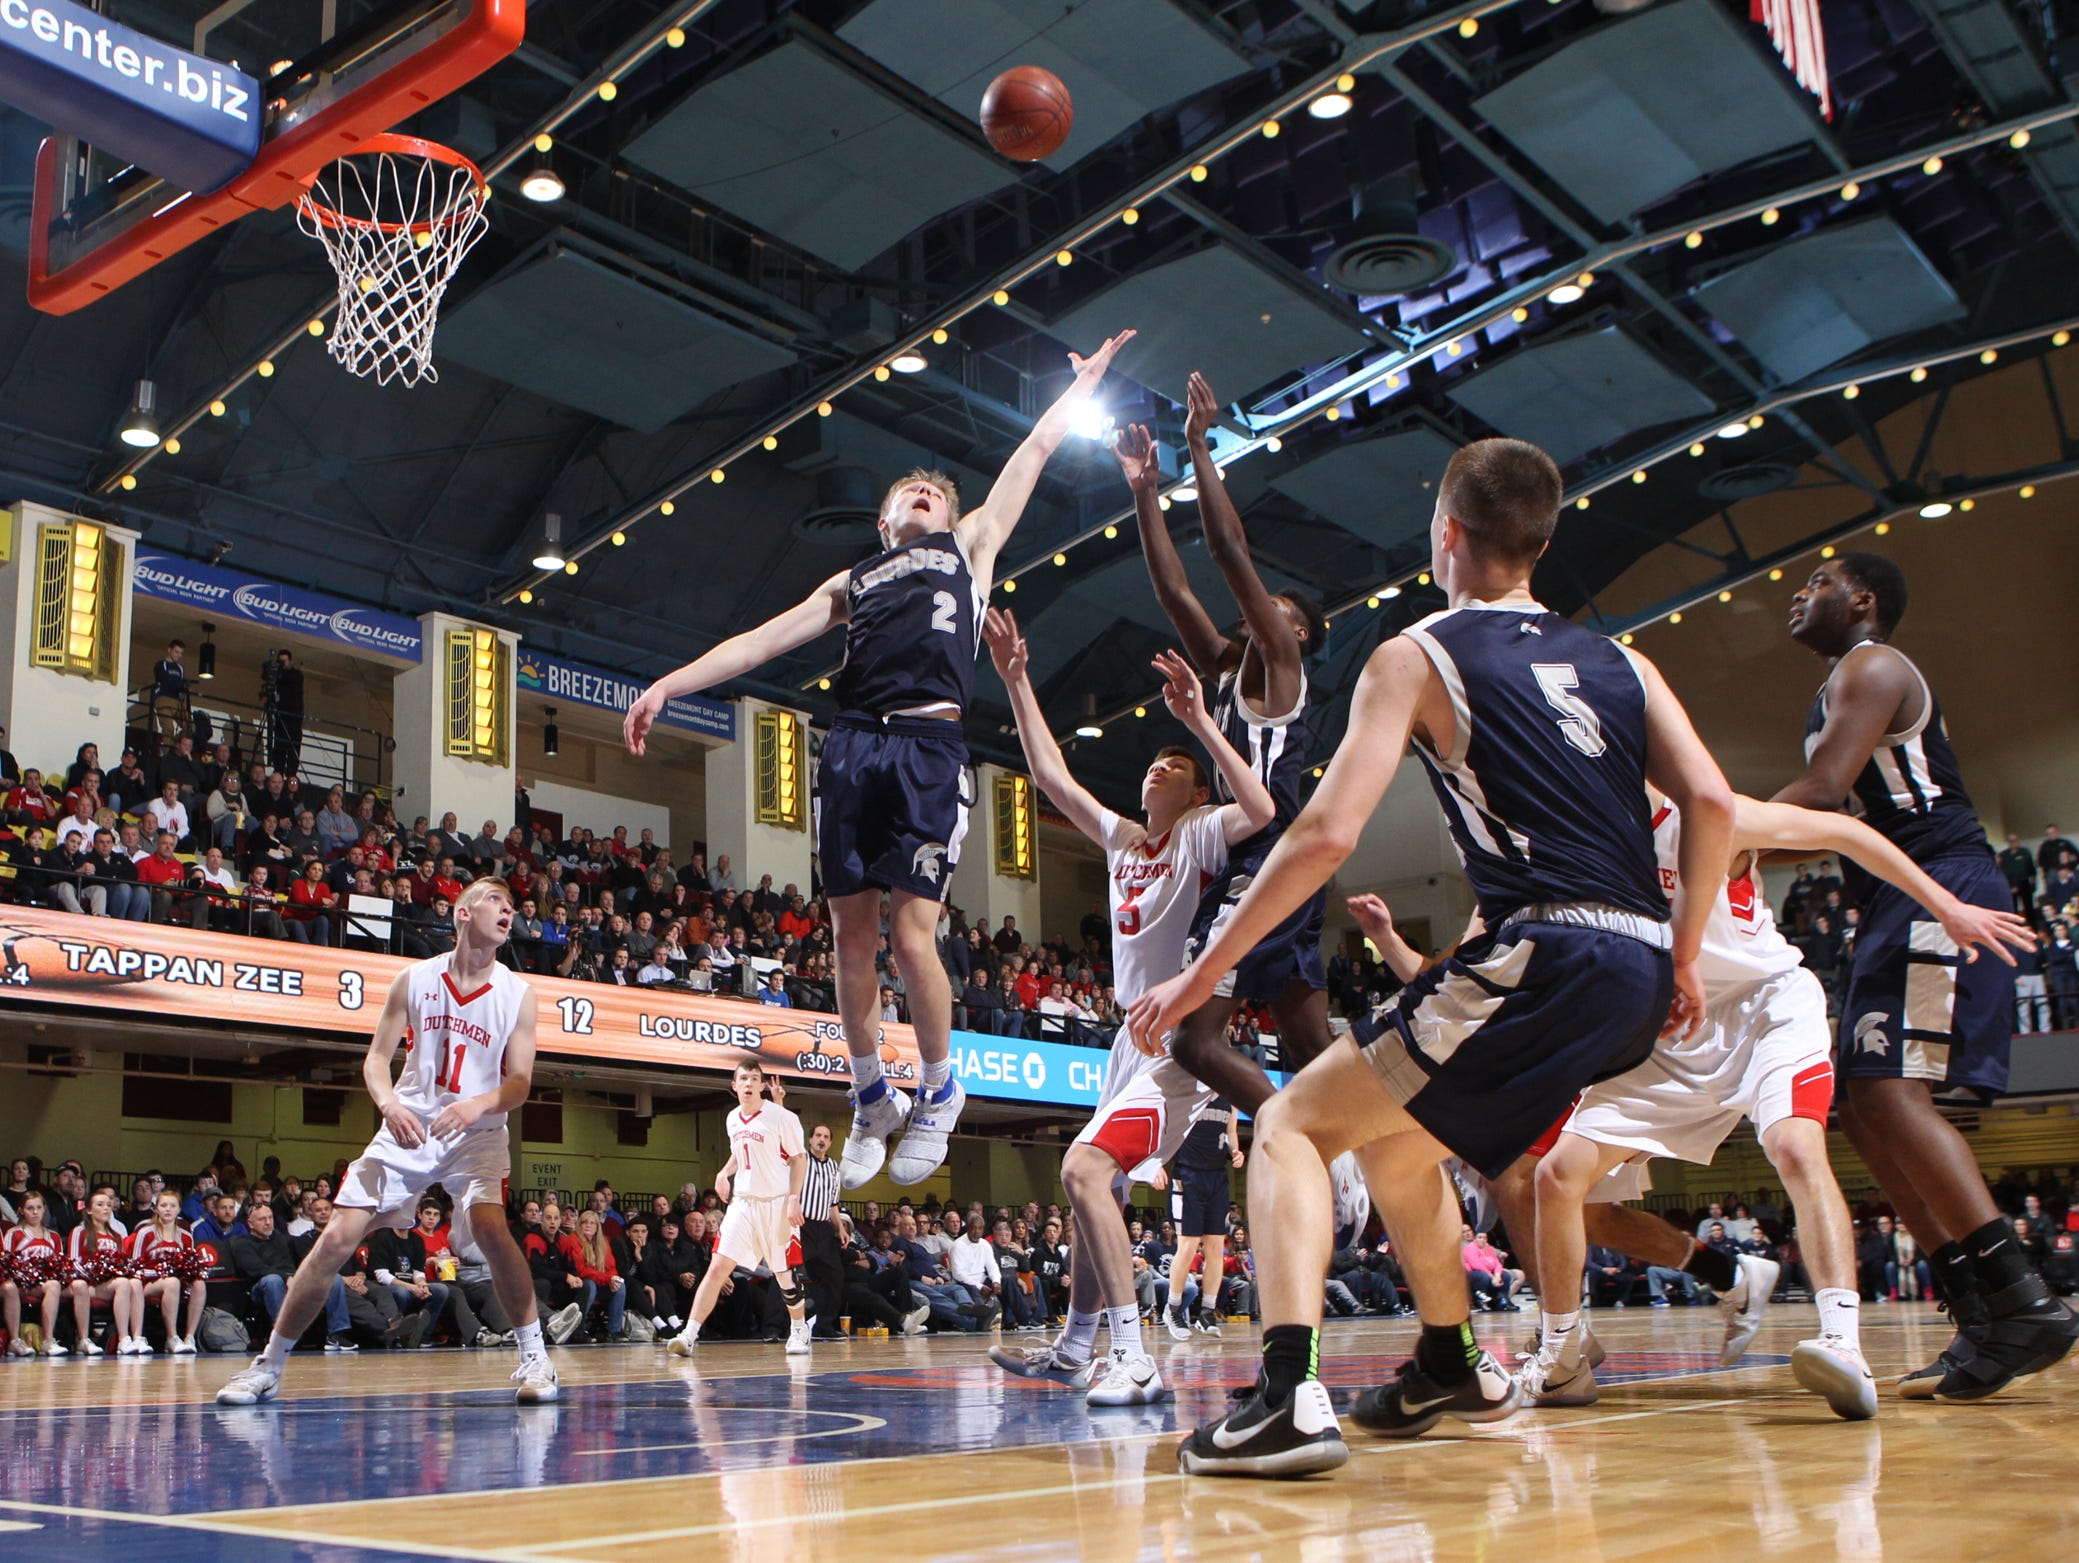 Lourdes' Joe Heavey (2) leaps for a rebound during their 42-38 win over Tappan Zee in the Section 1 Class A boys championship basketball game at the Westchester County Center in White Plains on Sunday, March 5, 2017.